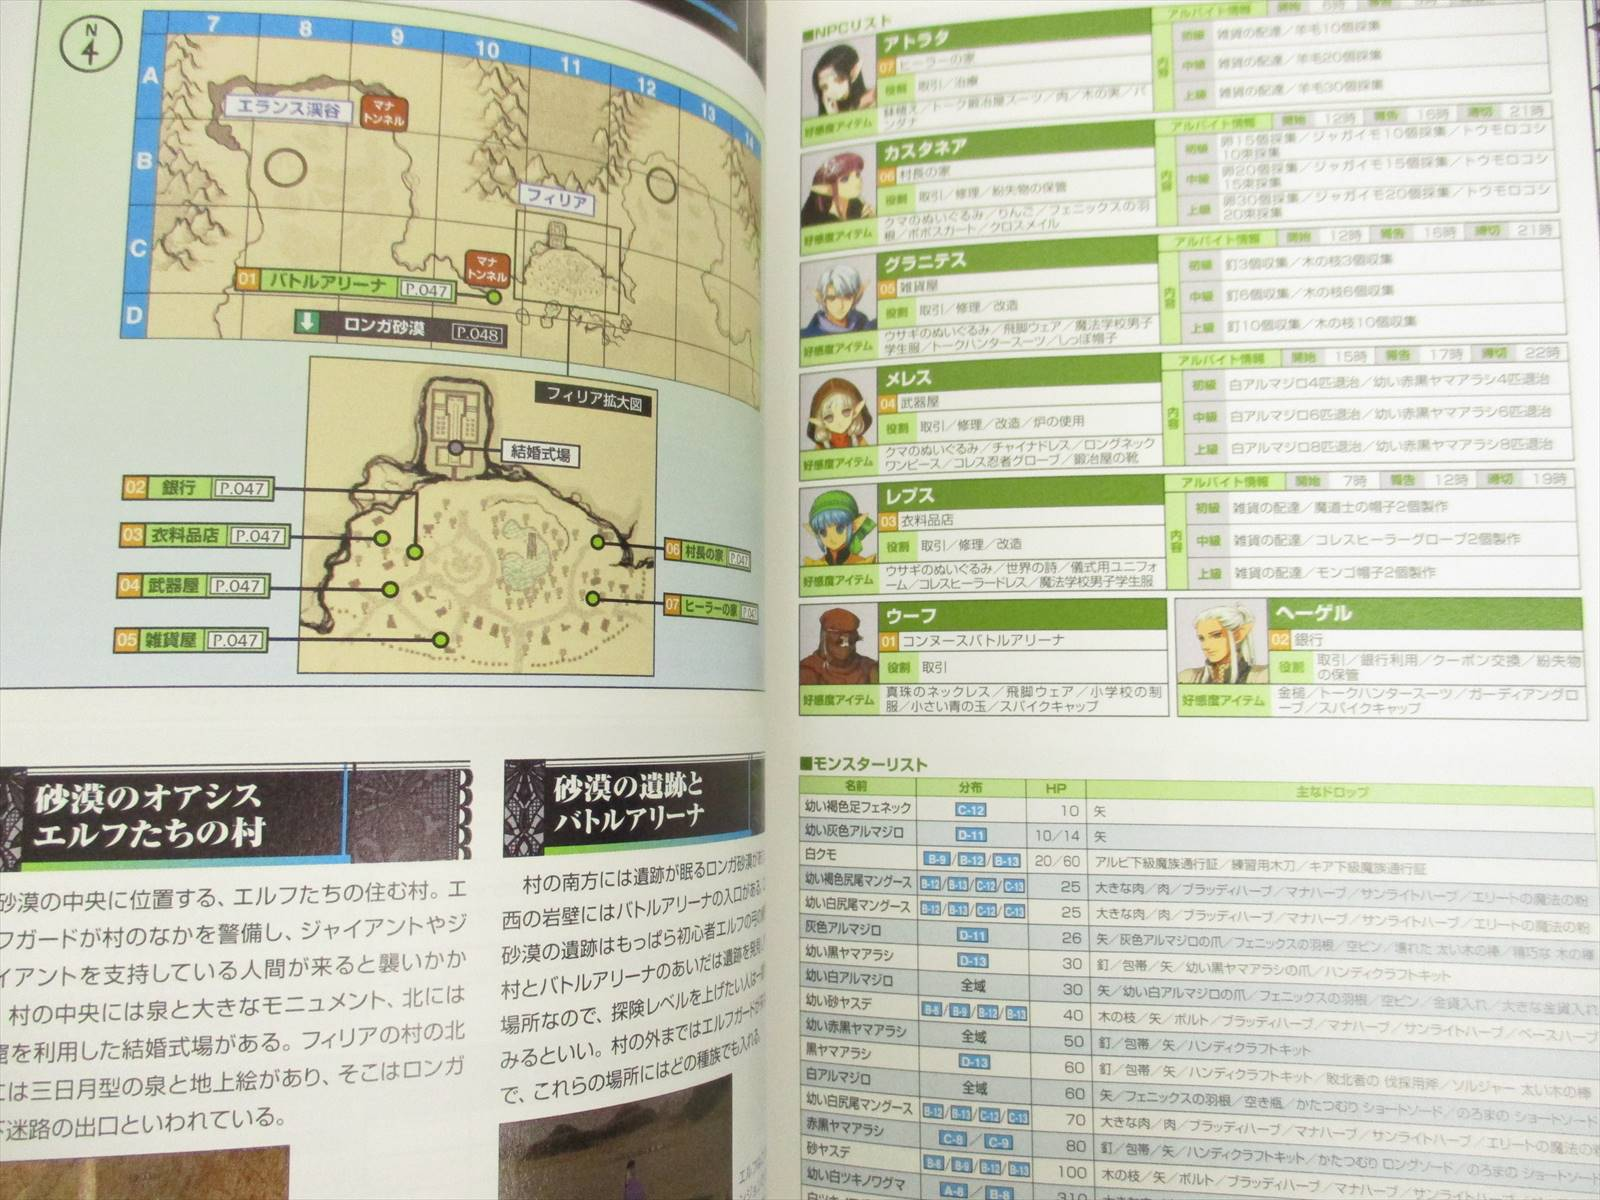 Details about MABINOGI Chapter 2 Data Book Guide PC SB61*